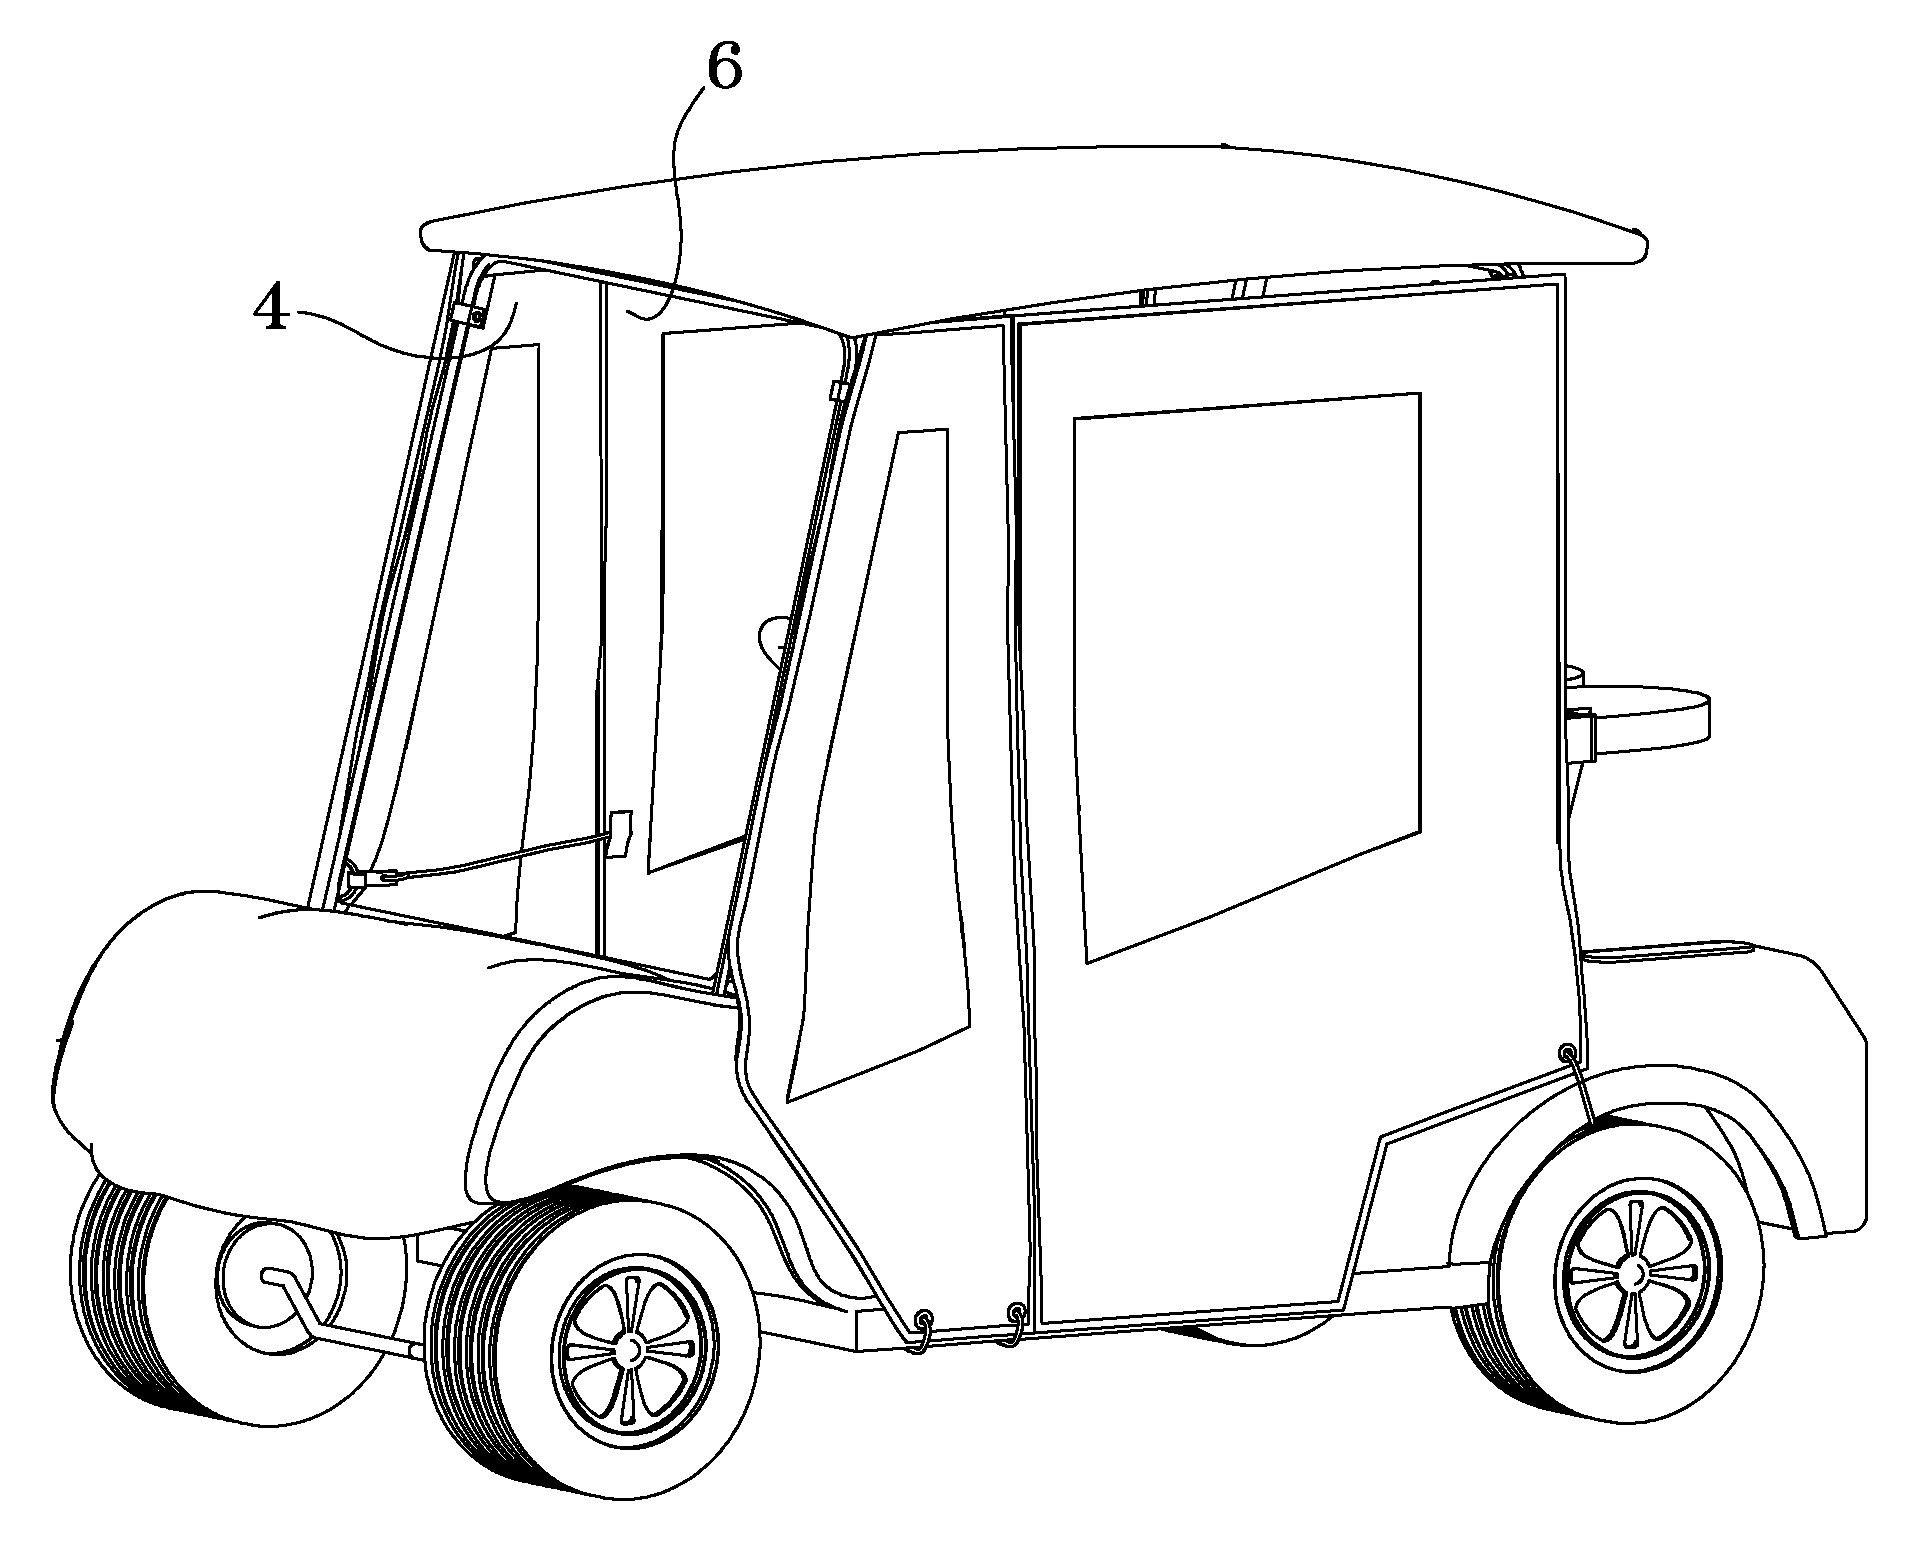 Image Result For Golf Cart Roof And Frame